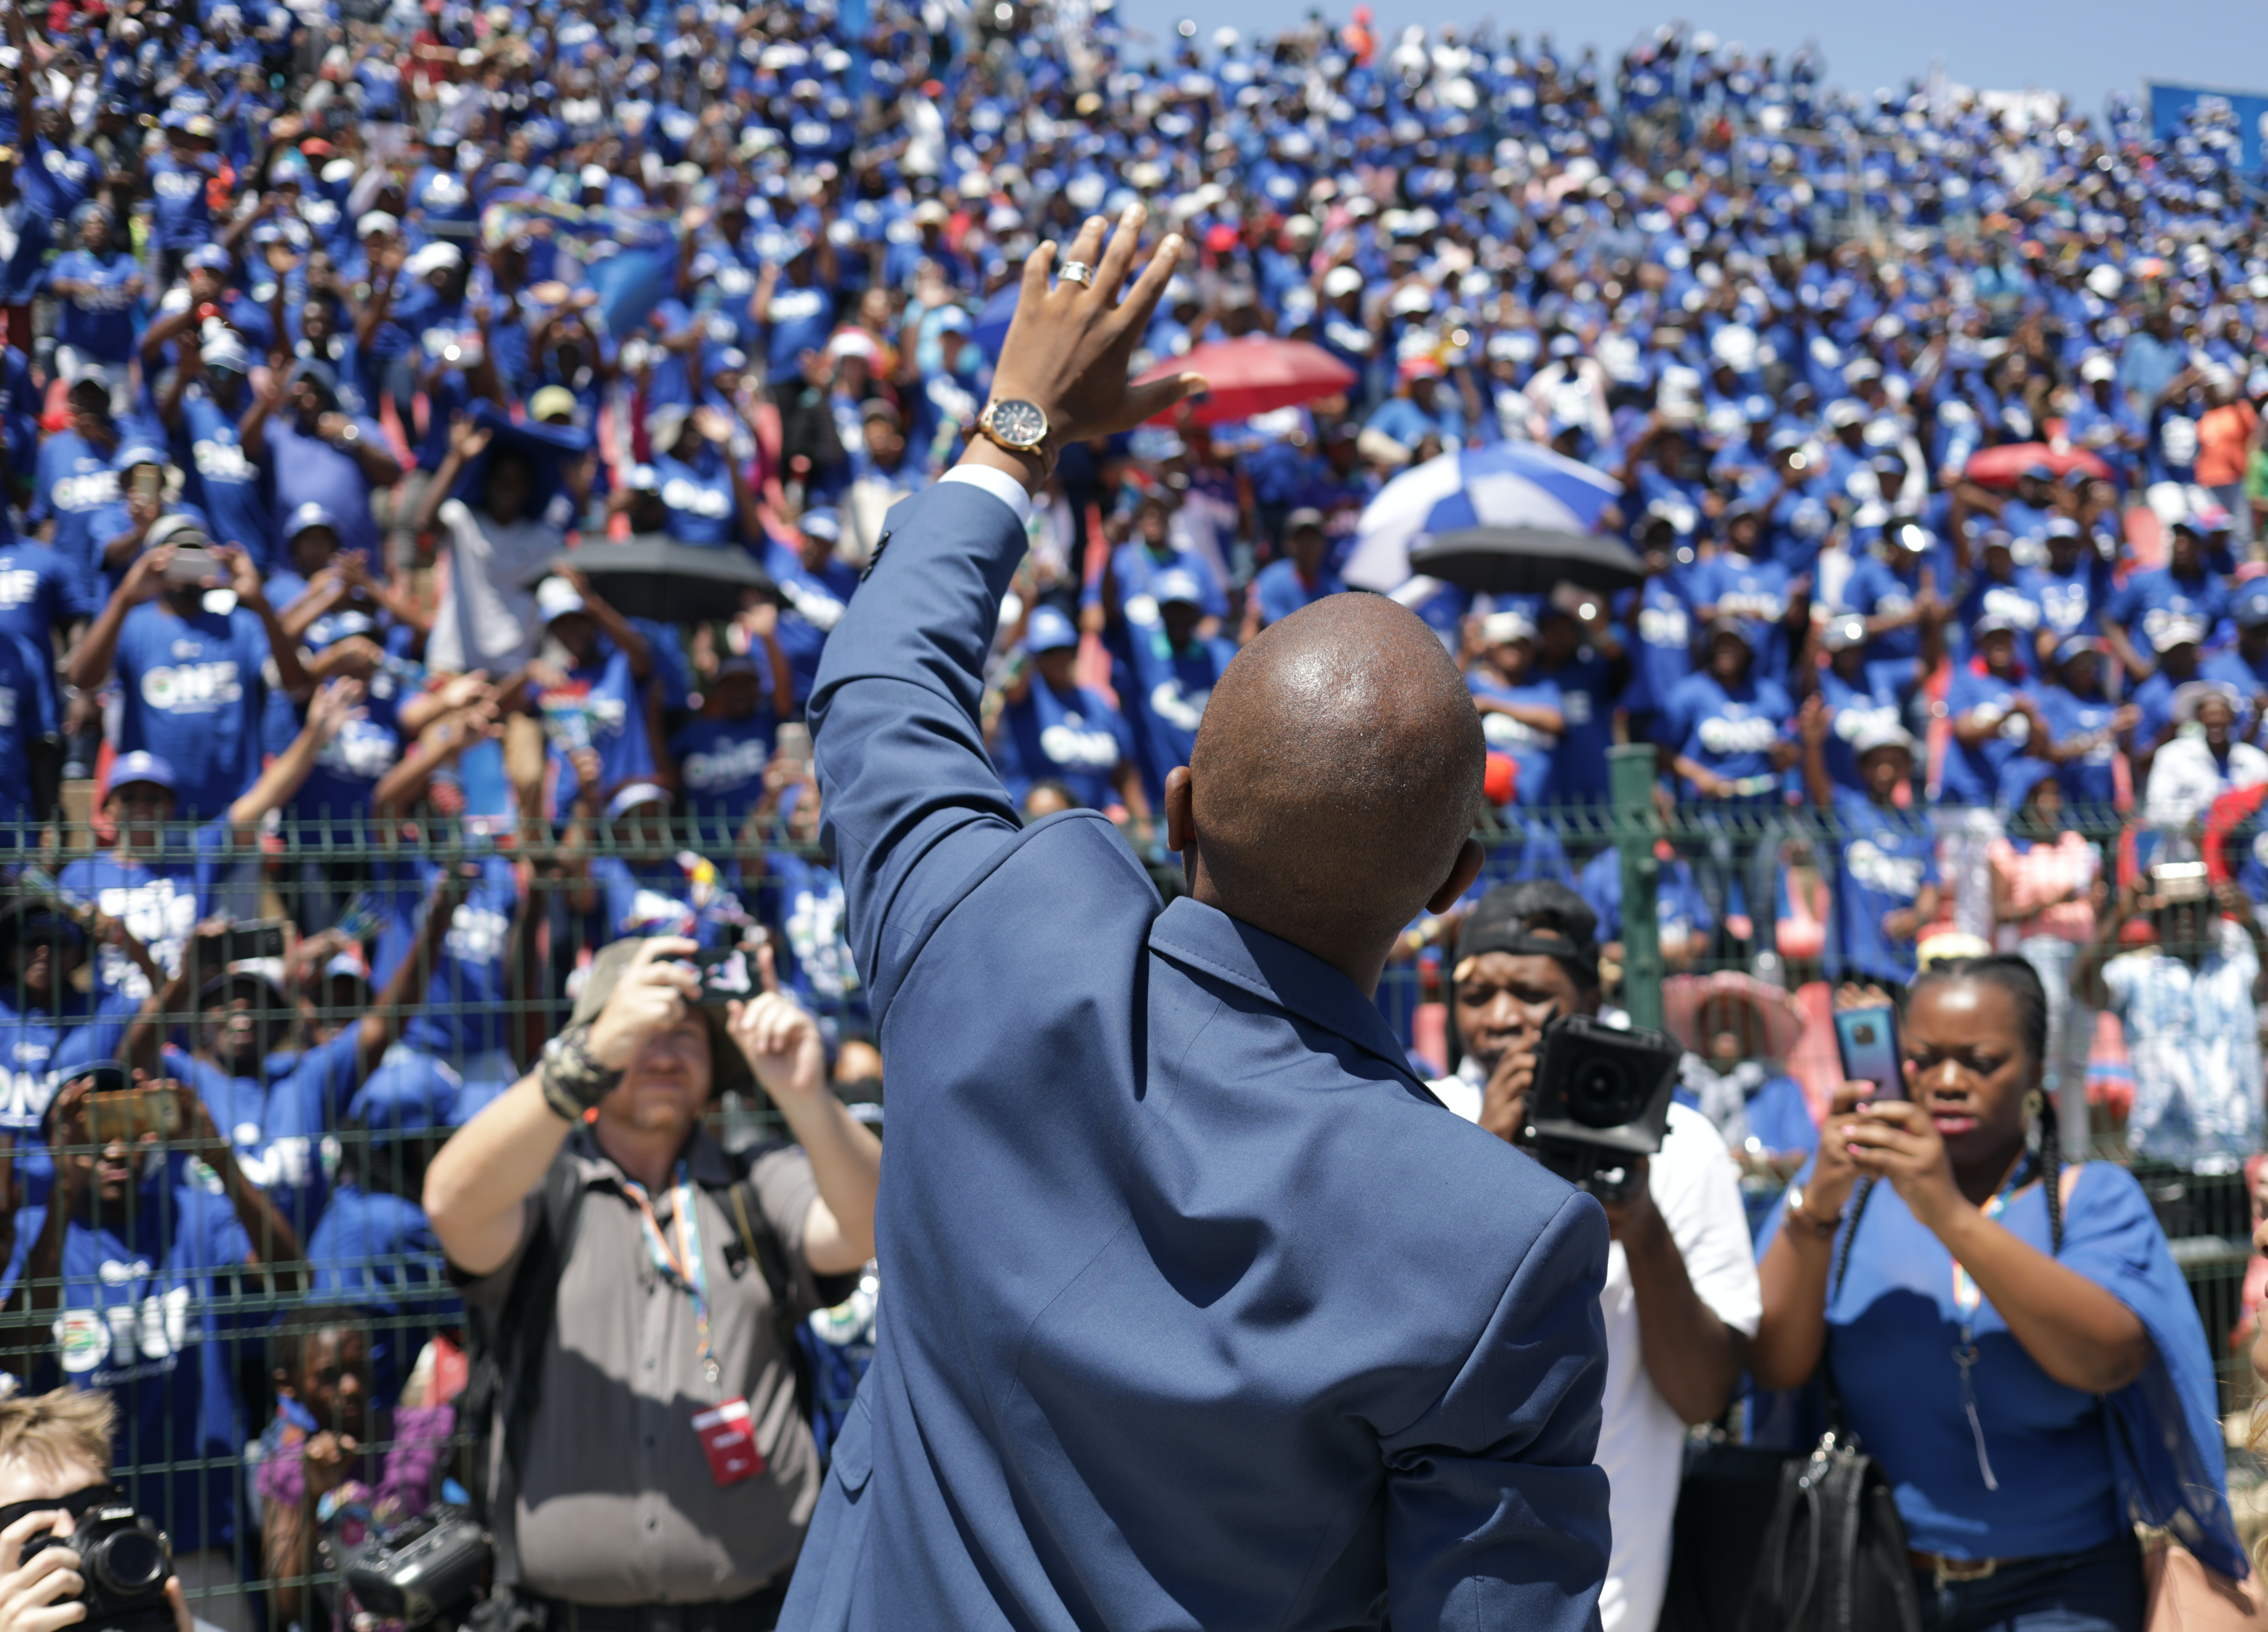 Parties aren't taking big issues seriously in South Africa's election campaign